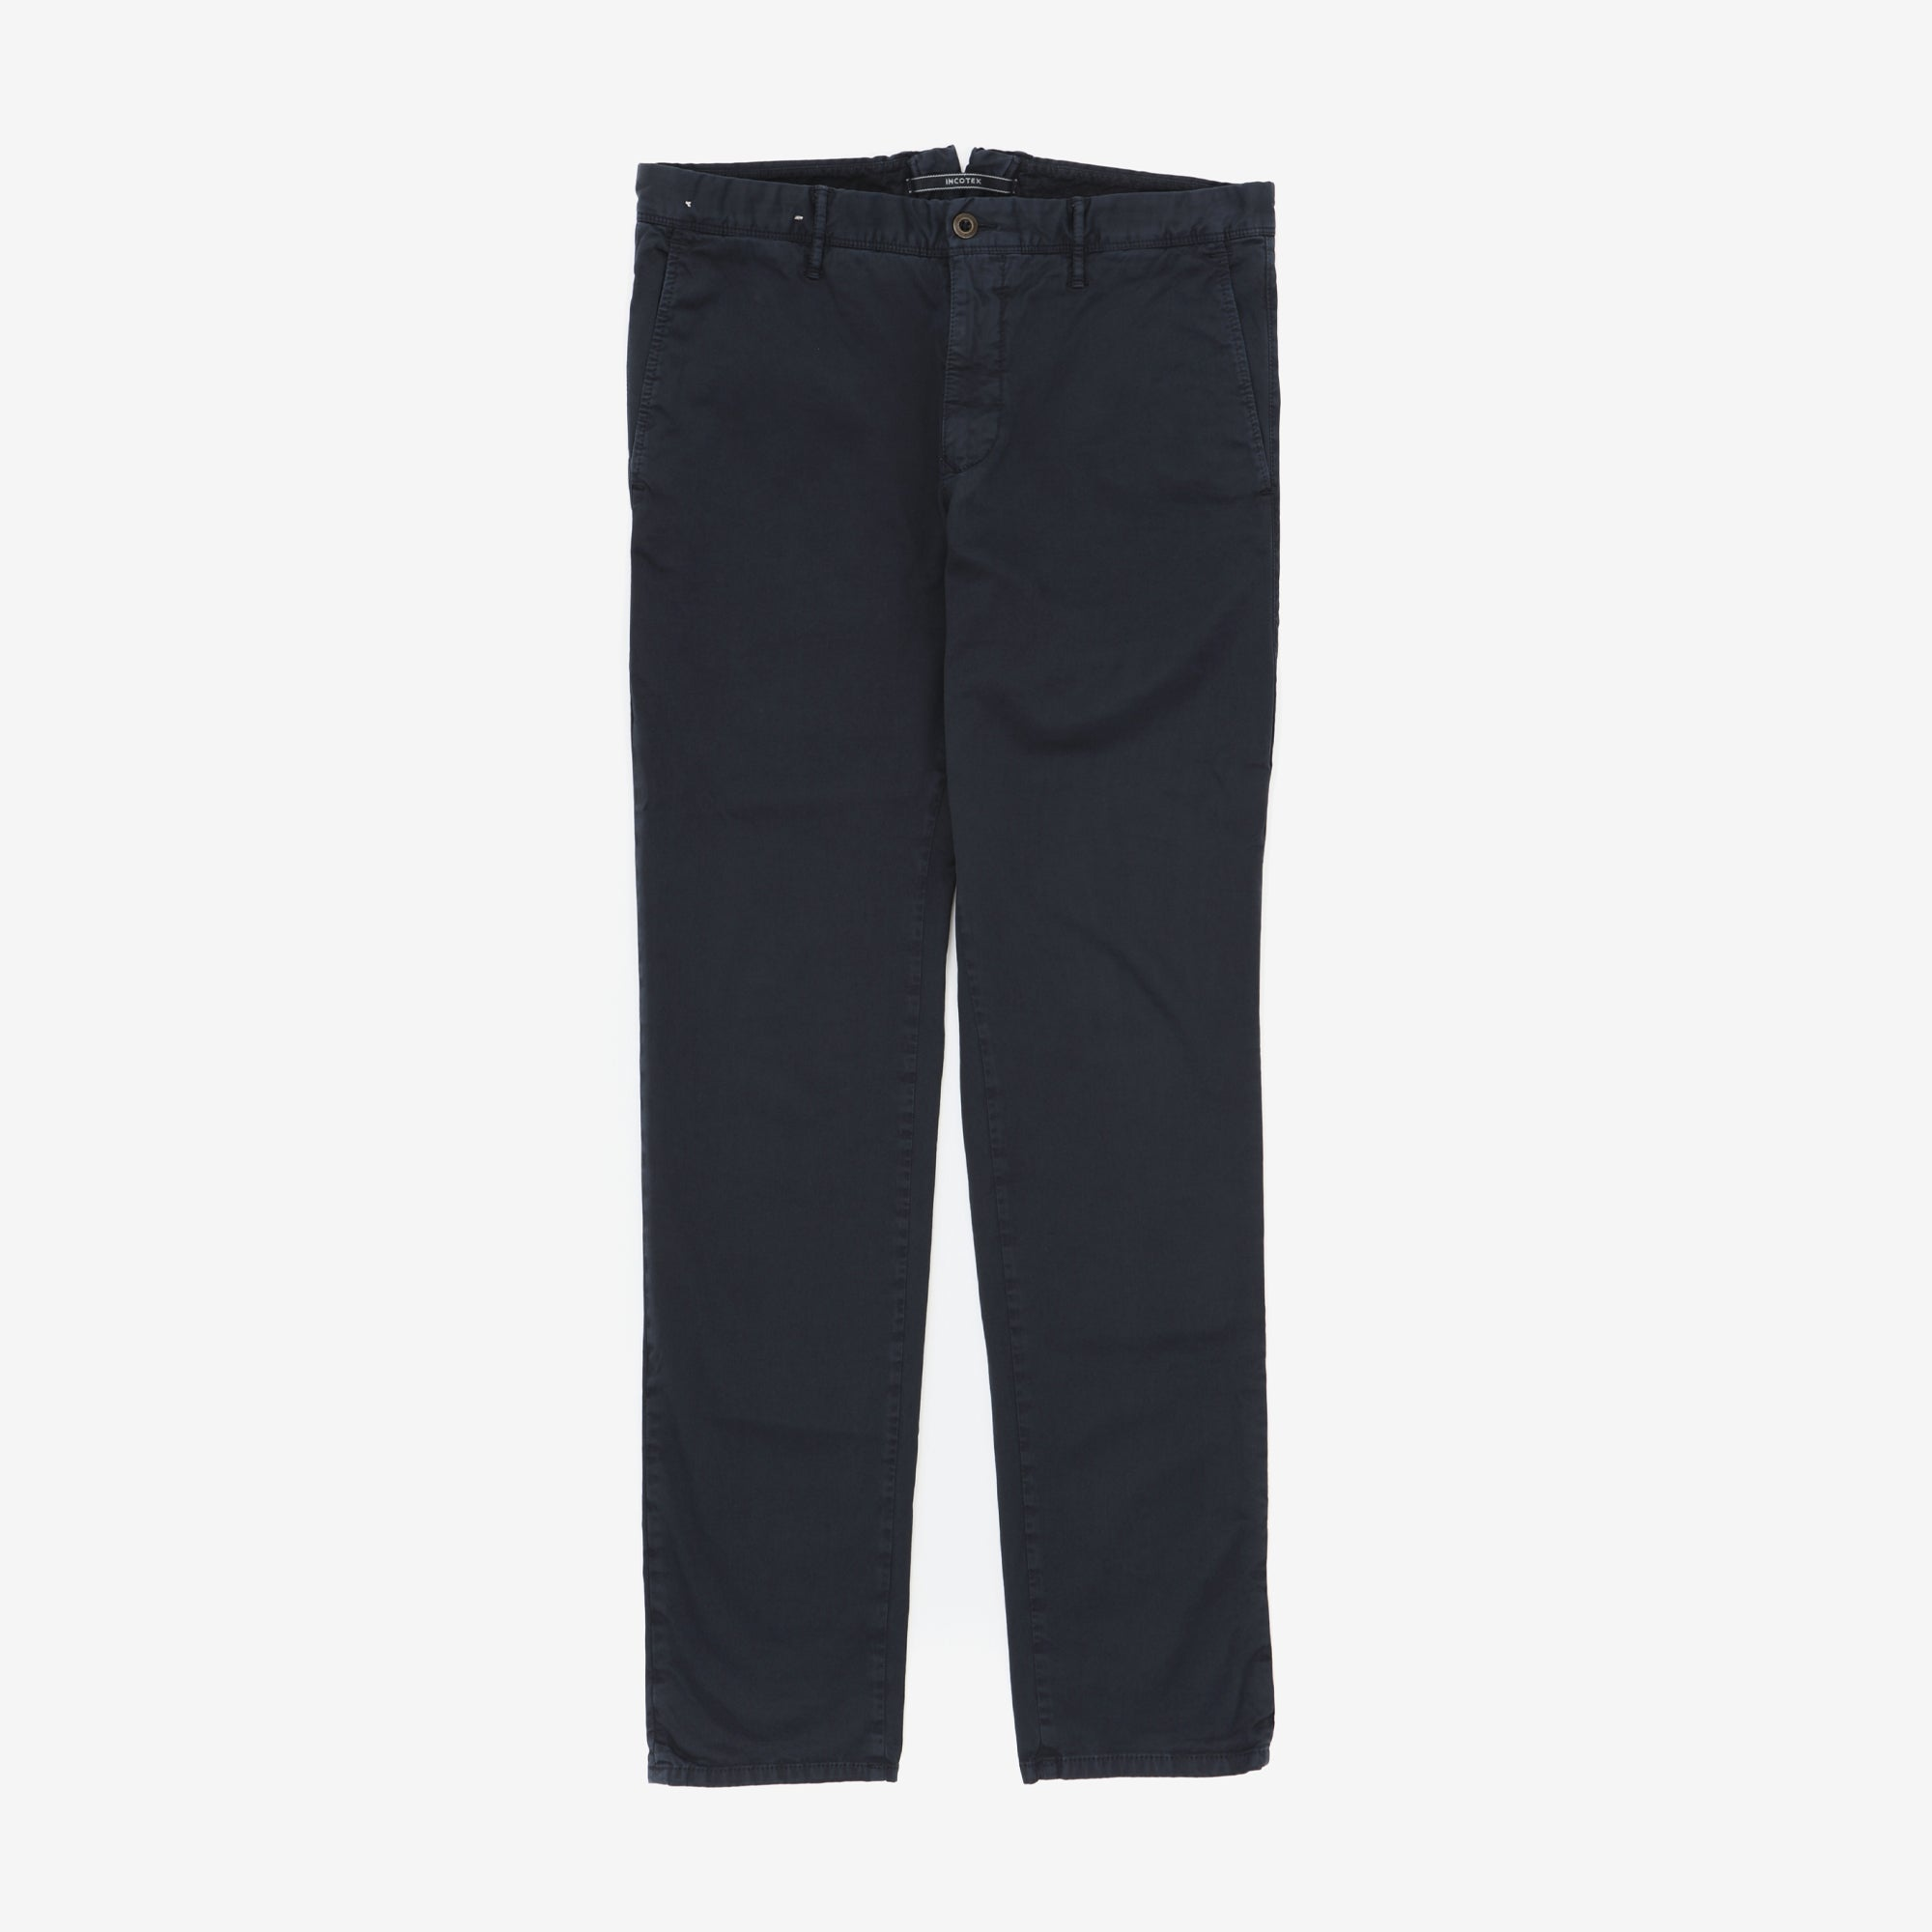 1ST603 Cotton Stretch Chino